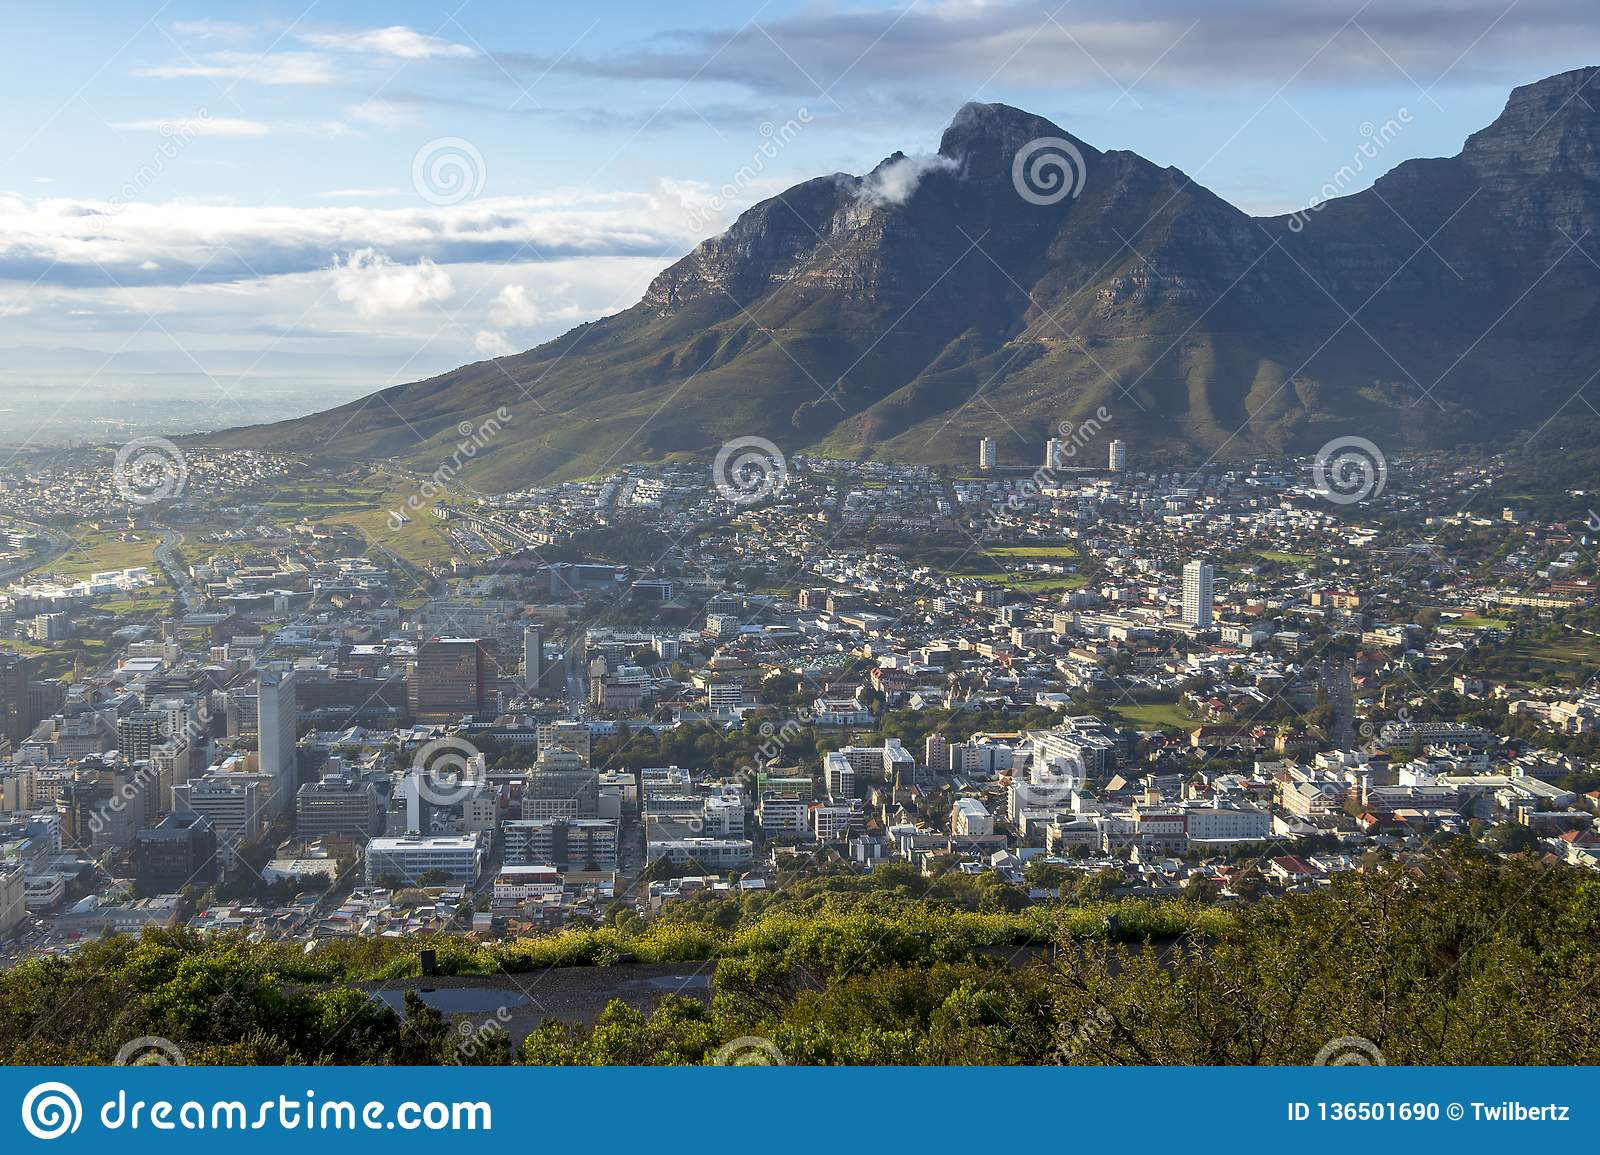 View to the center of Cape Town with mountains